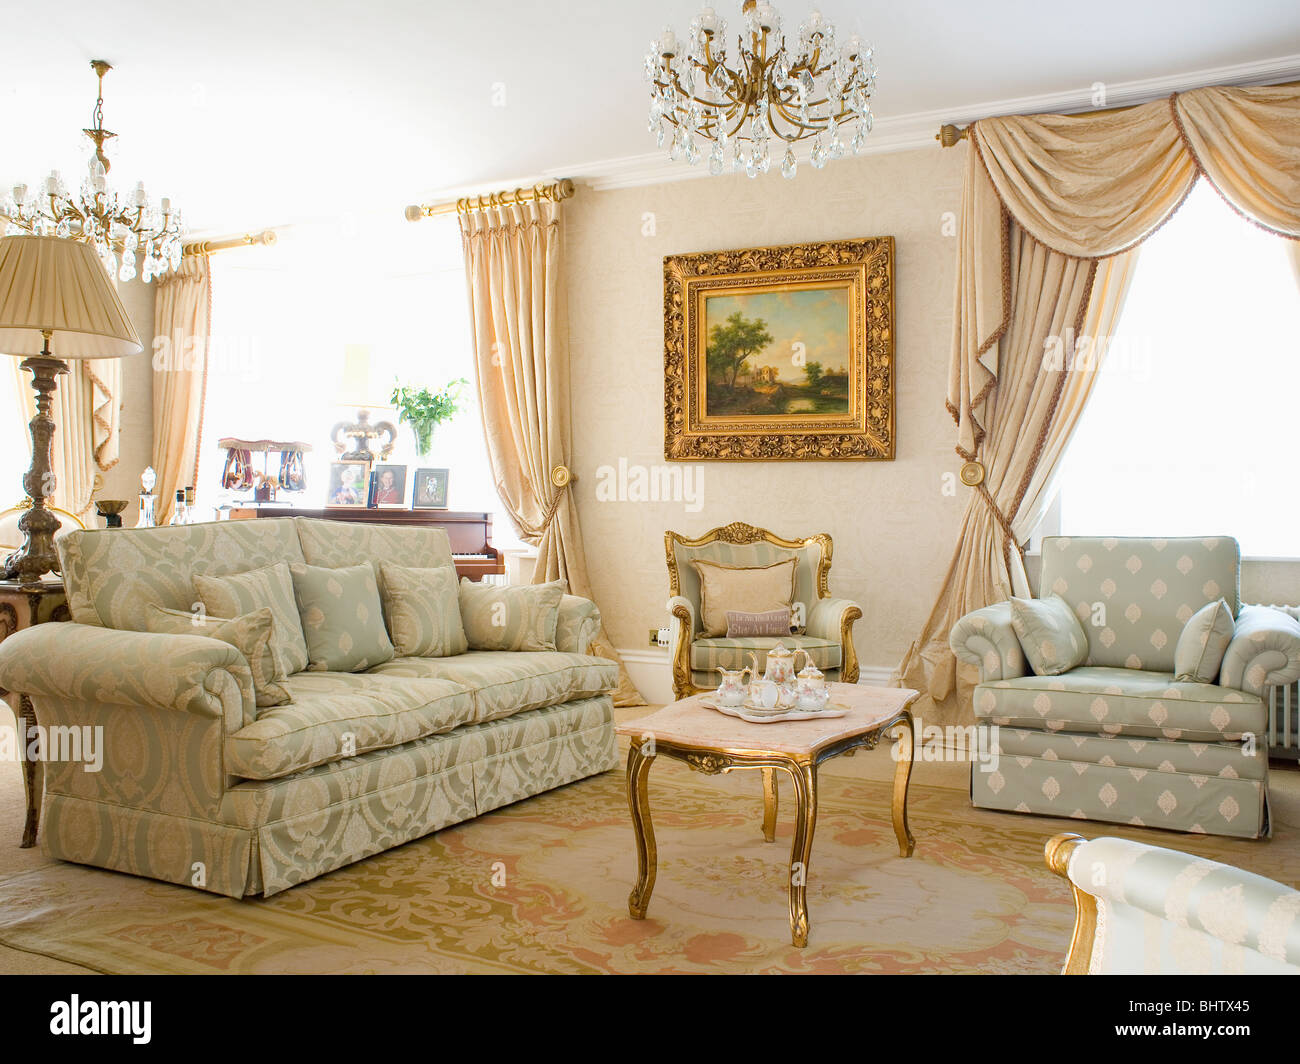 Opulent Neutral Country Living Room With Damask Sofa And Patterned - Damask living room furniture